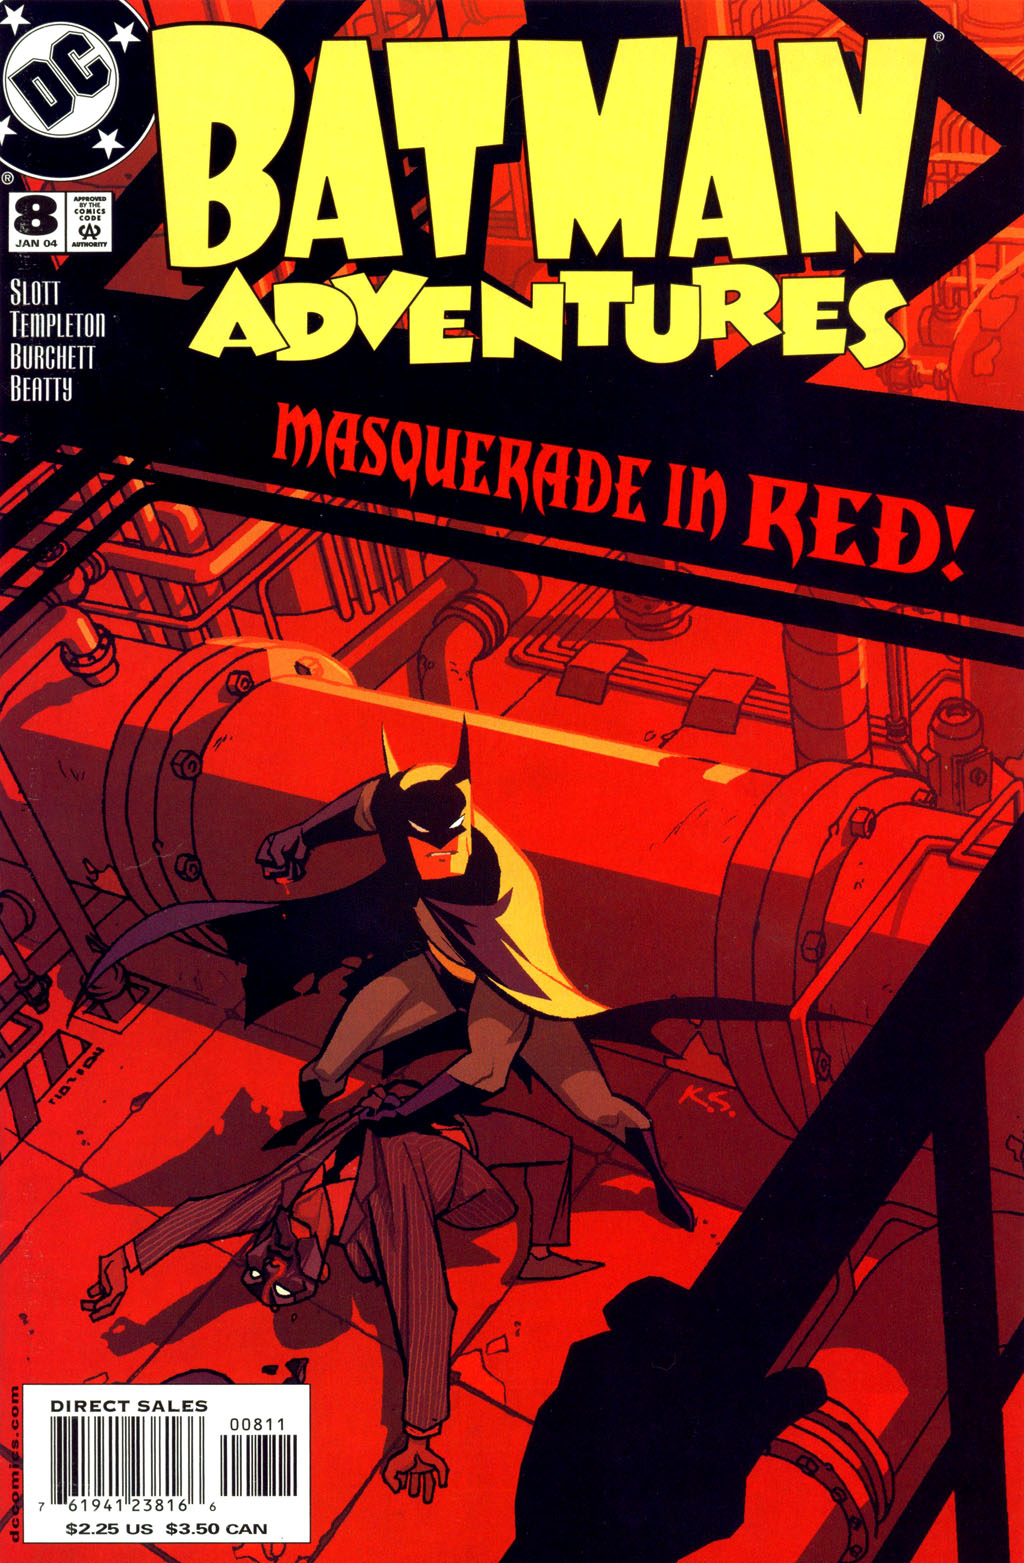 Batman Adventures (2003) 8 Page 1